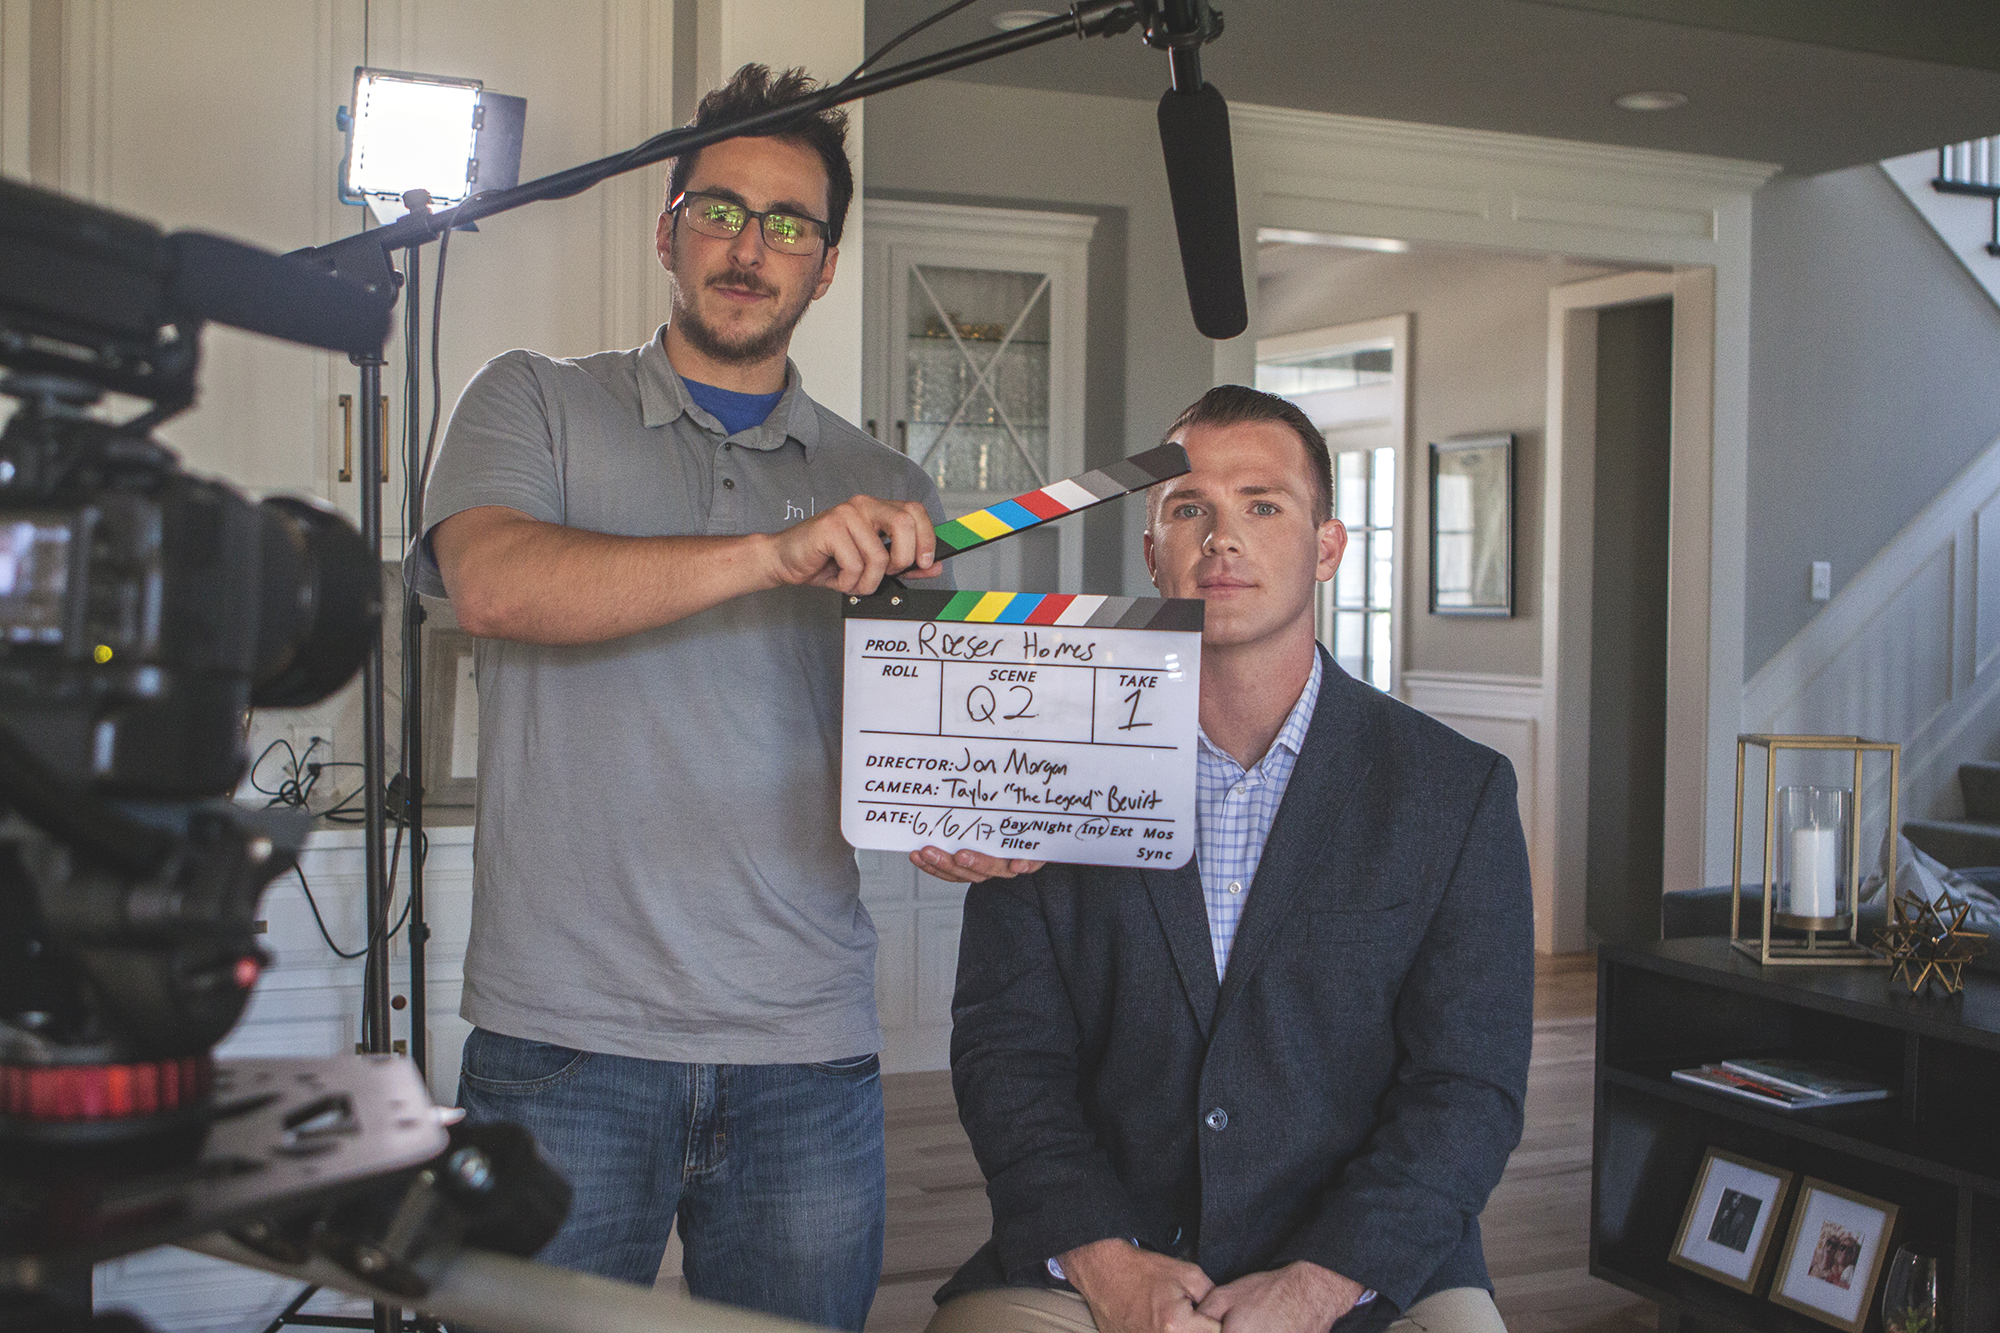 5 Talking Points For Your Architecture Firm Video